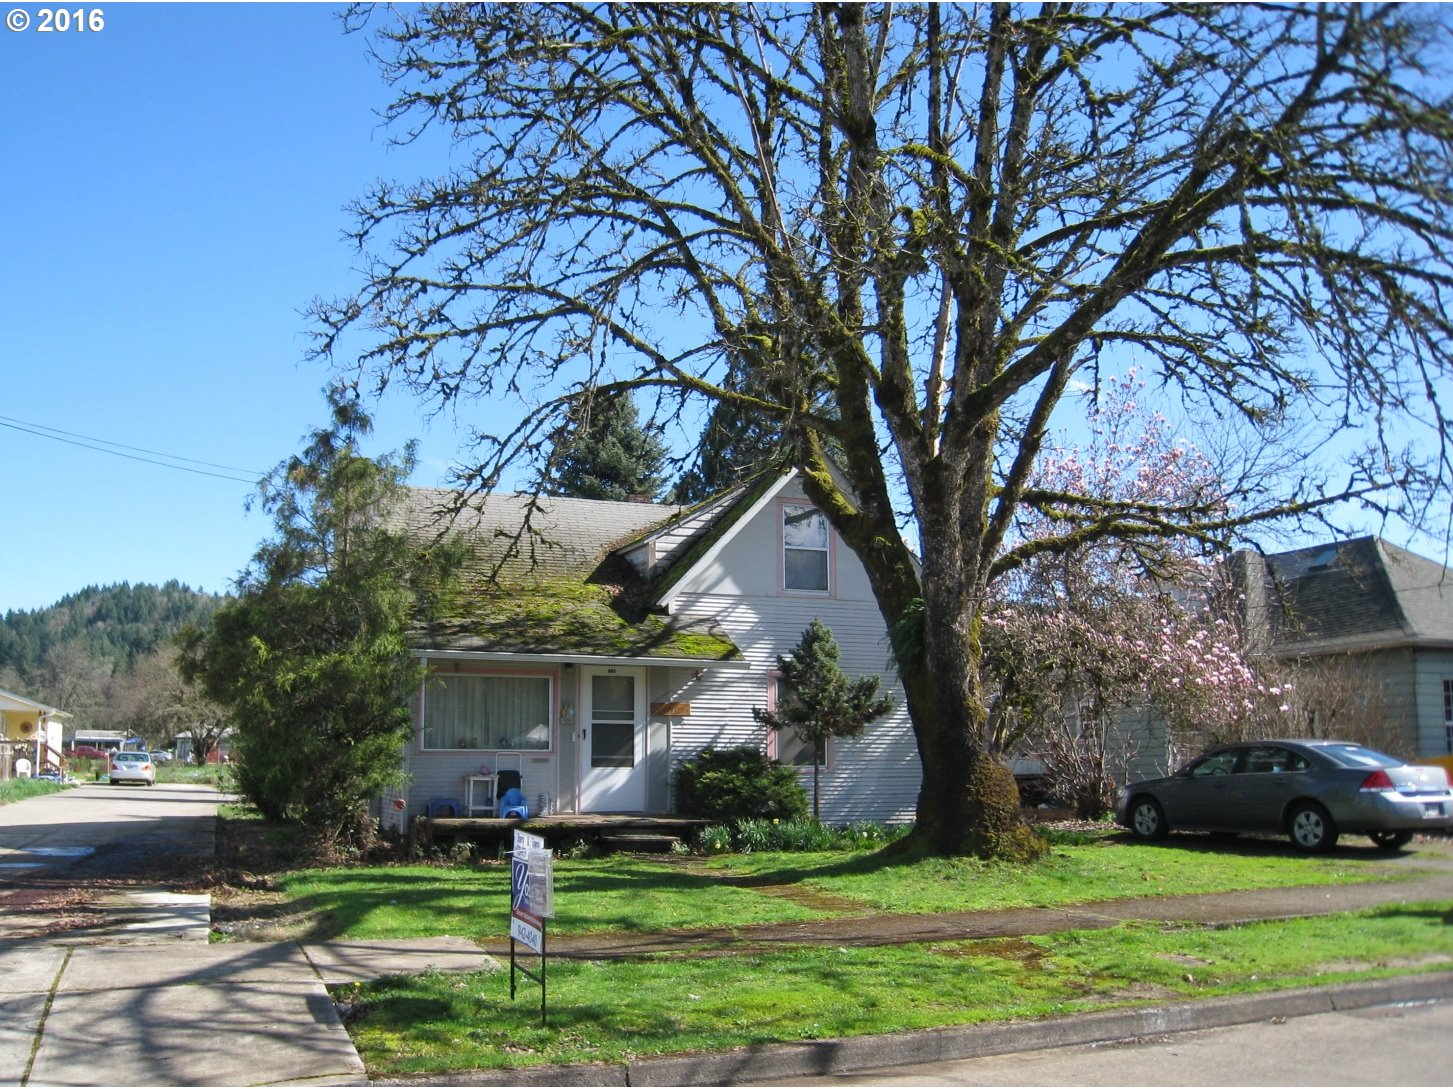 724 S 8TH ST, Cottage Grove, OR 97424